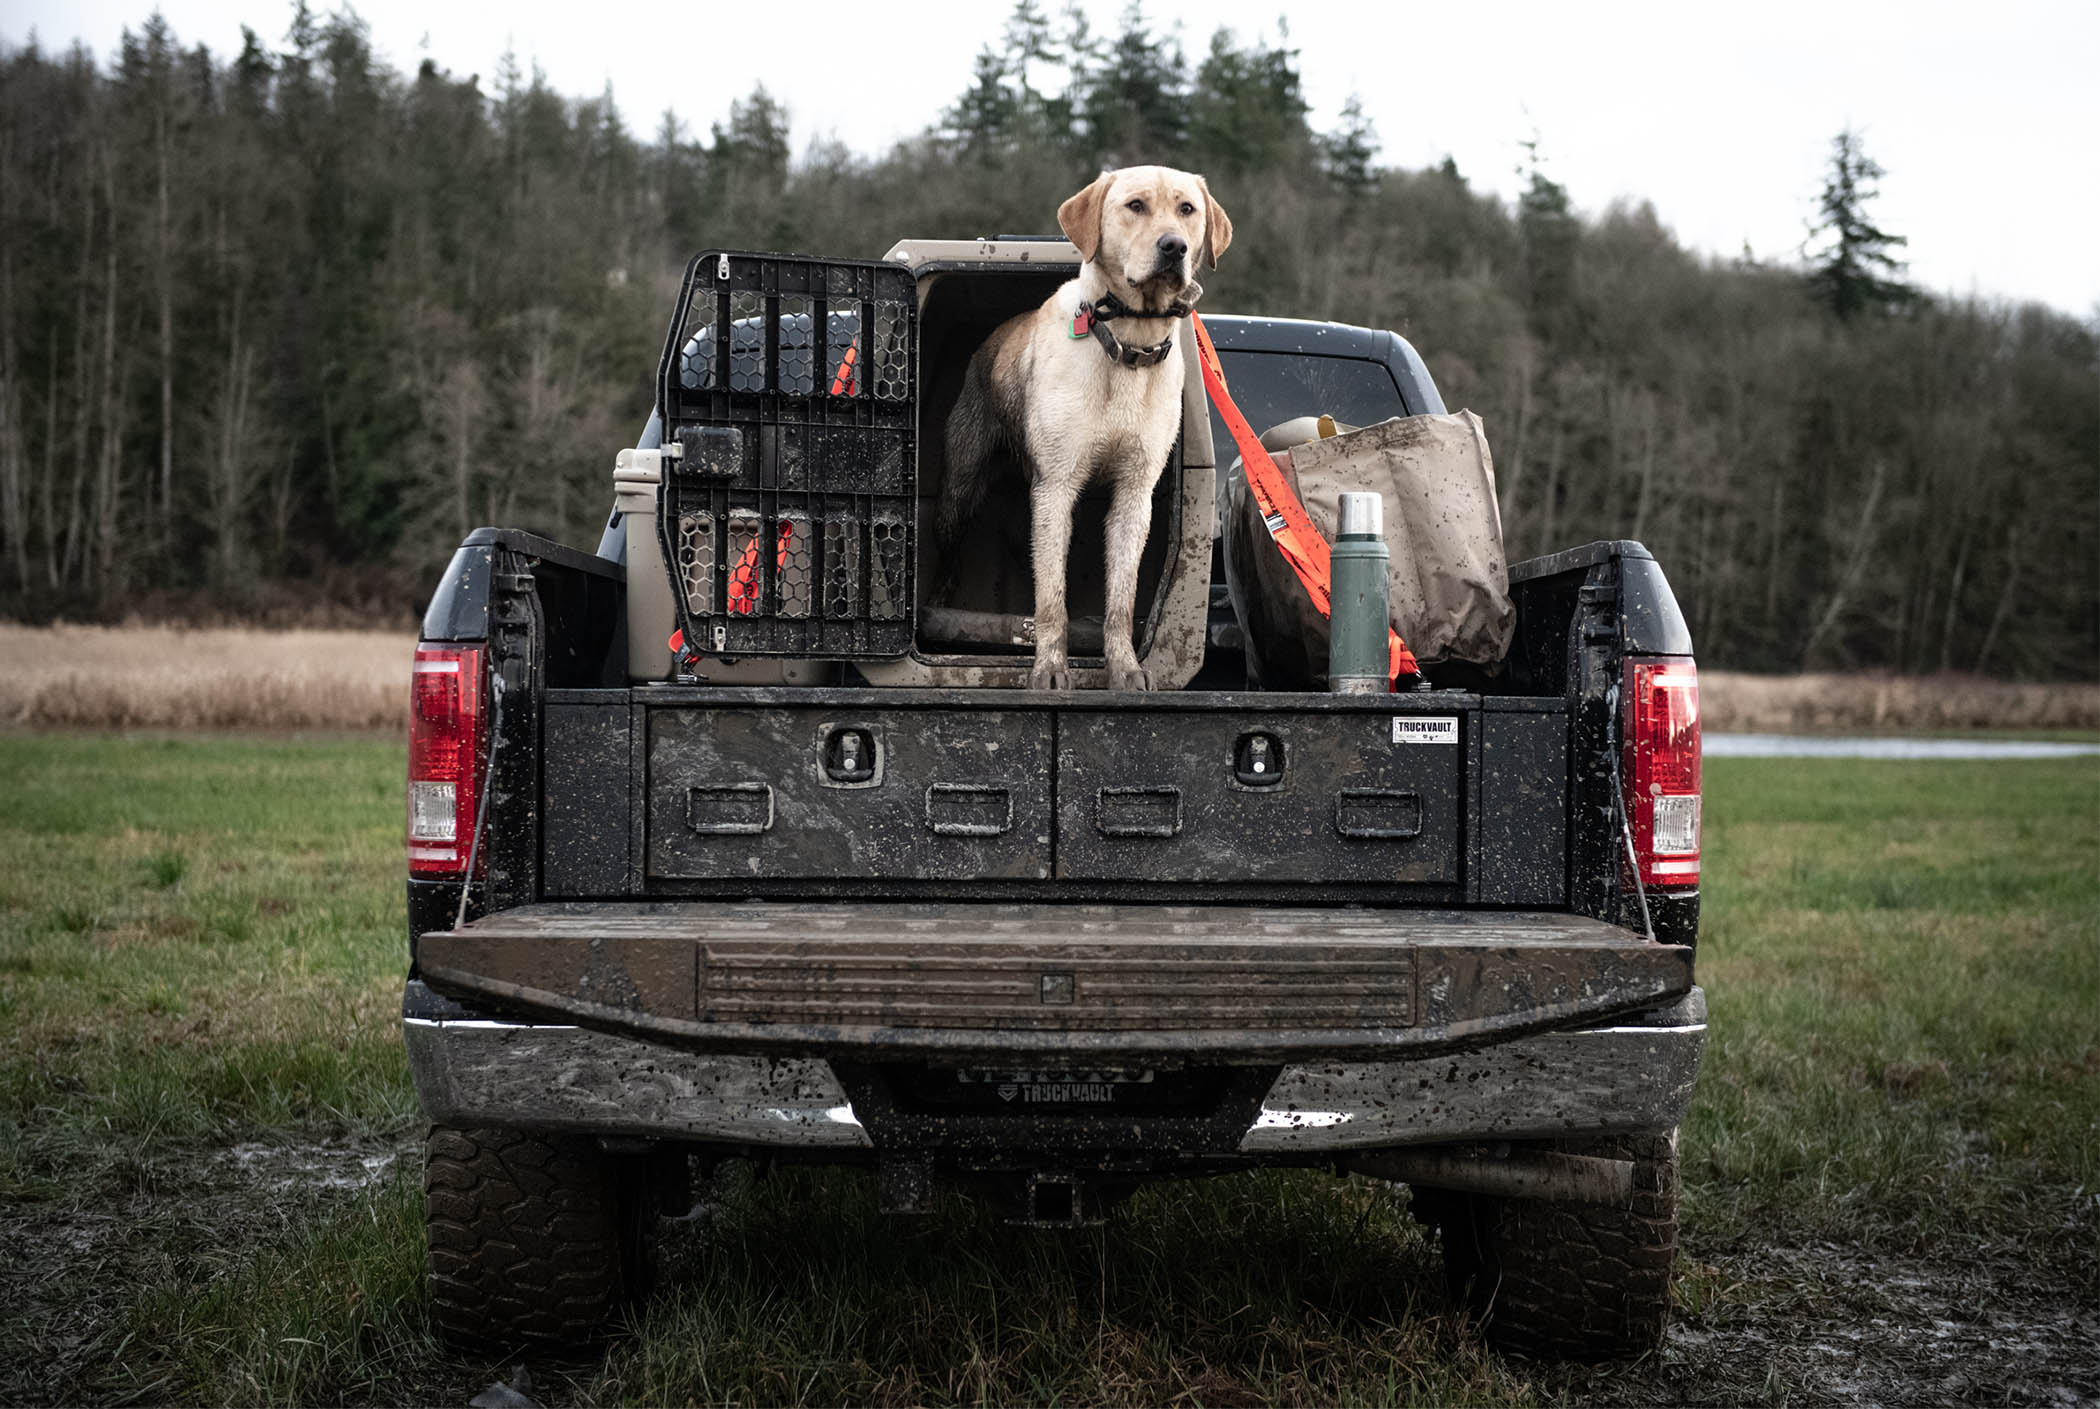 A hunting dog on top of a muddy all-weather TruckVault system for storing guns.